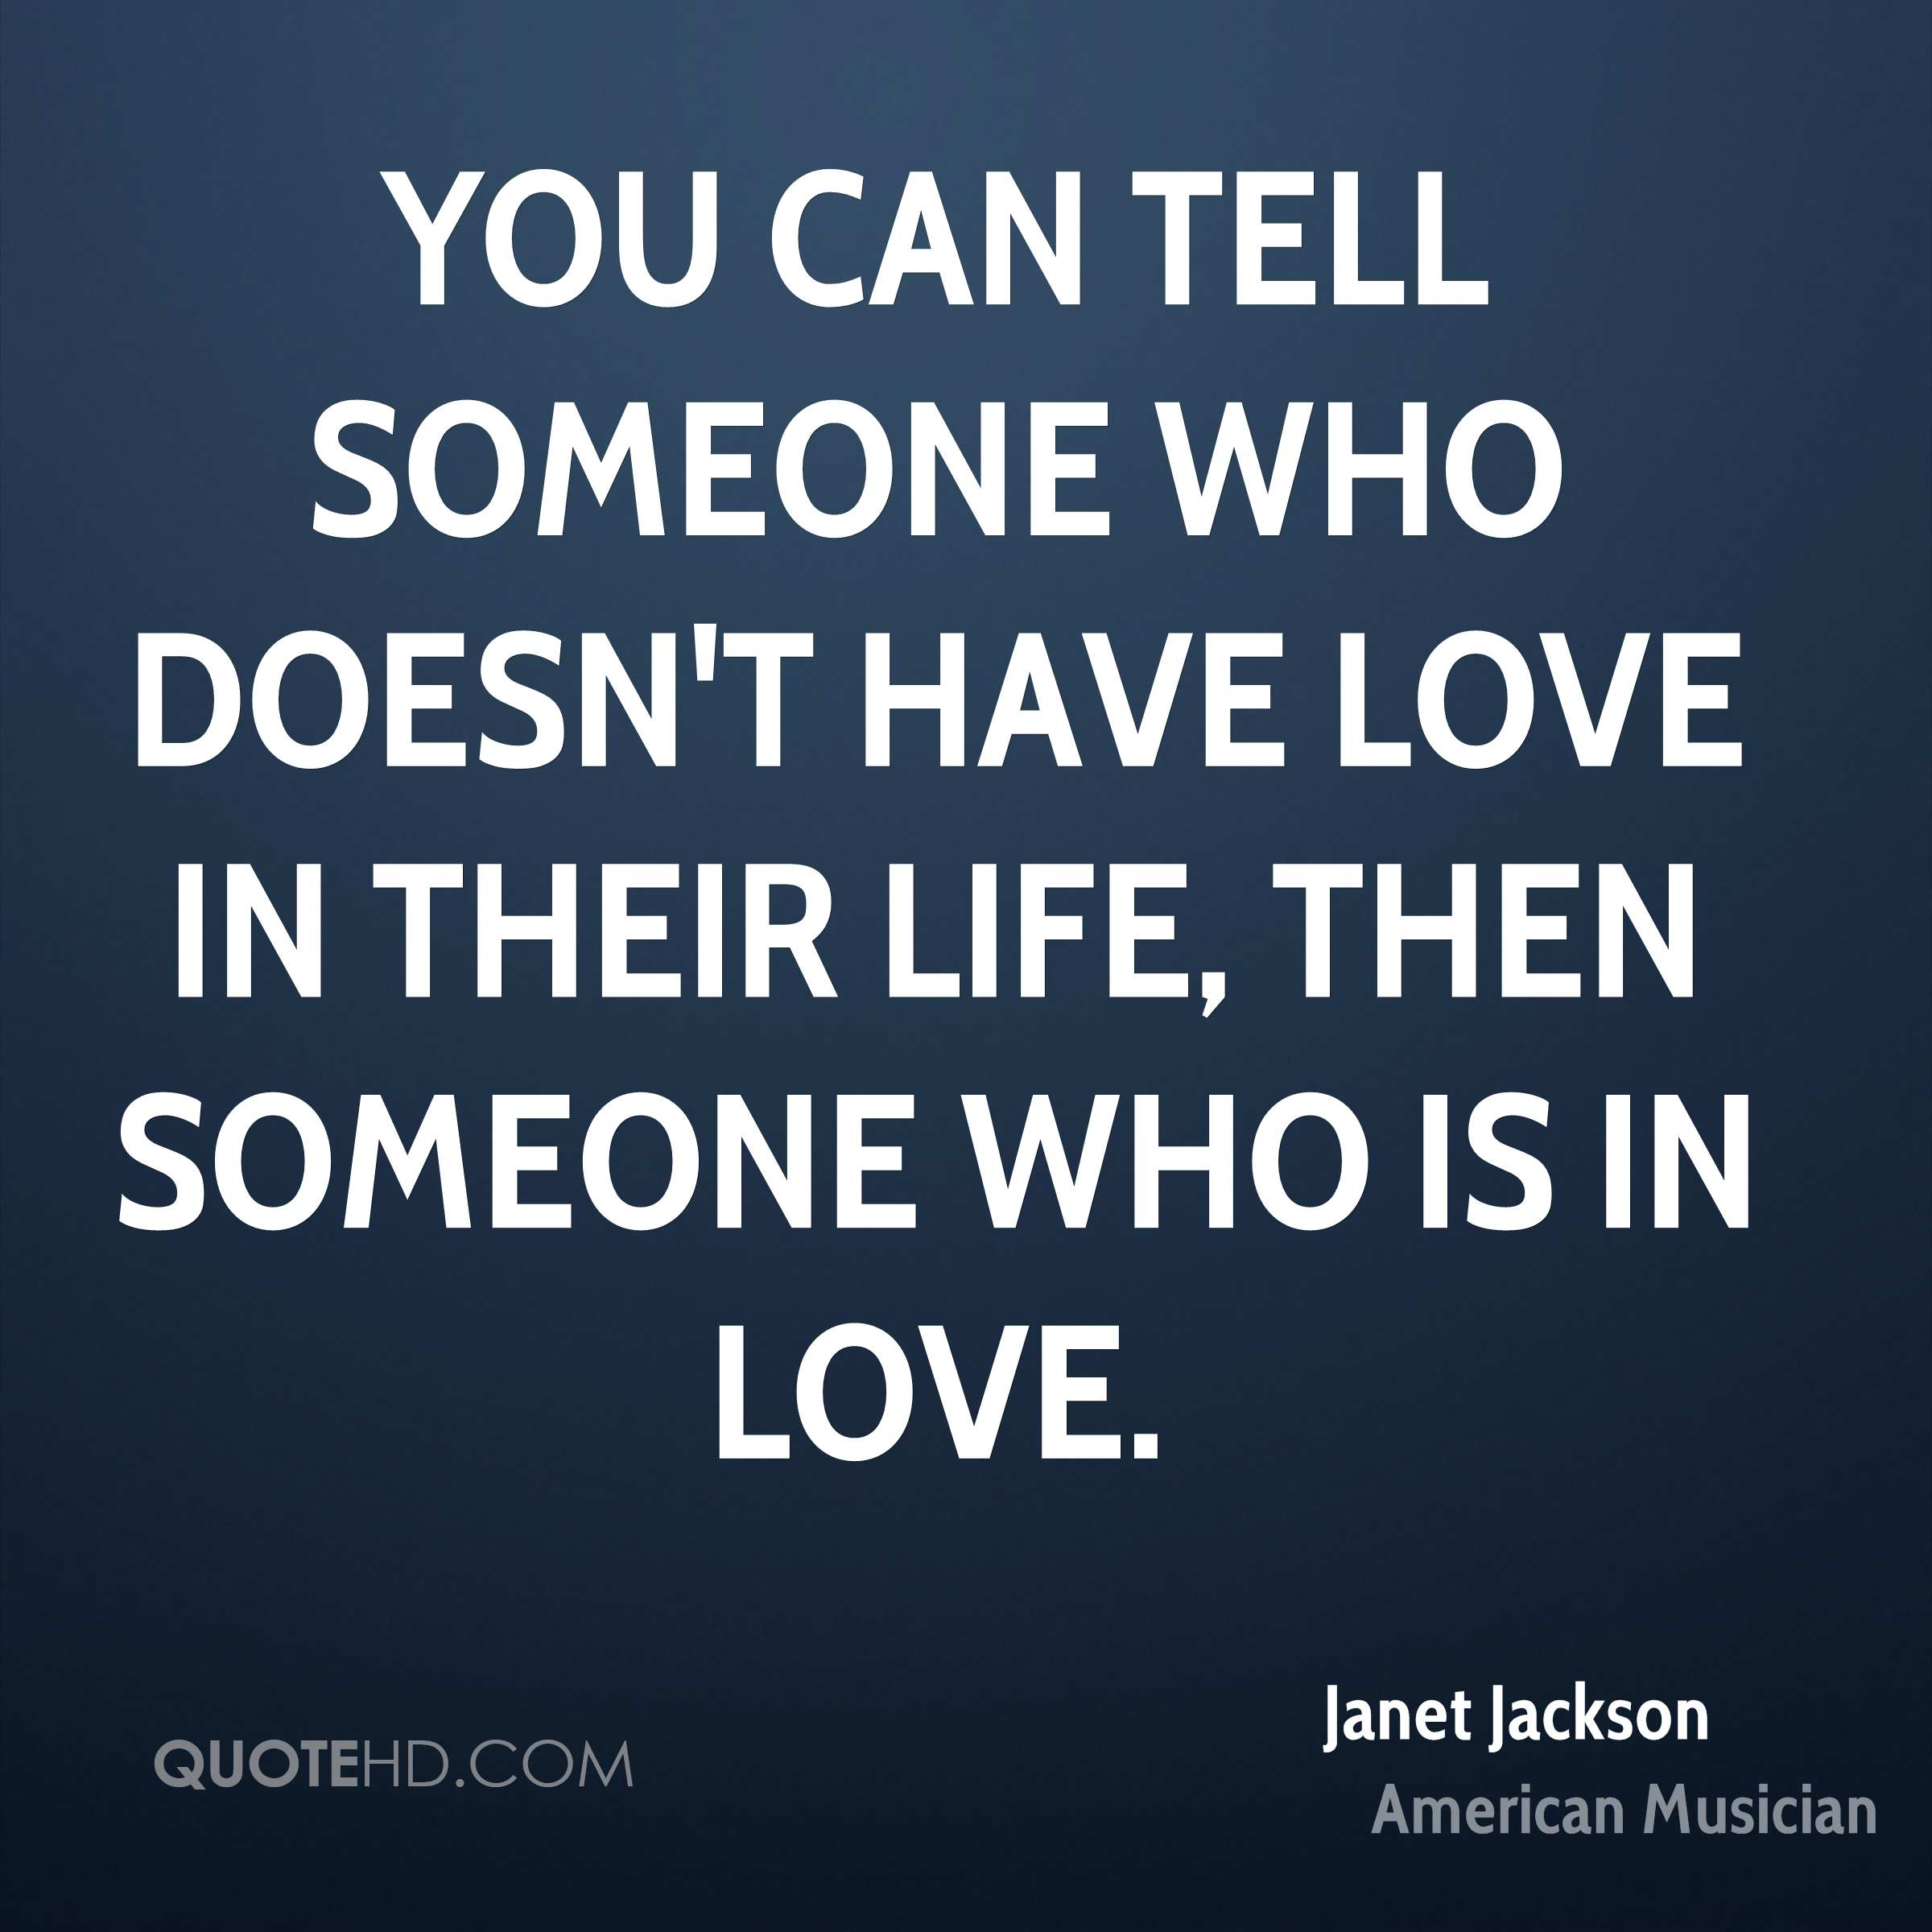 You can tell someone who doesn't have love in their life, then someone who is in love.